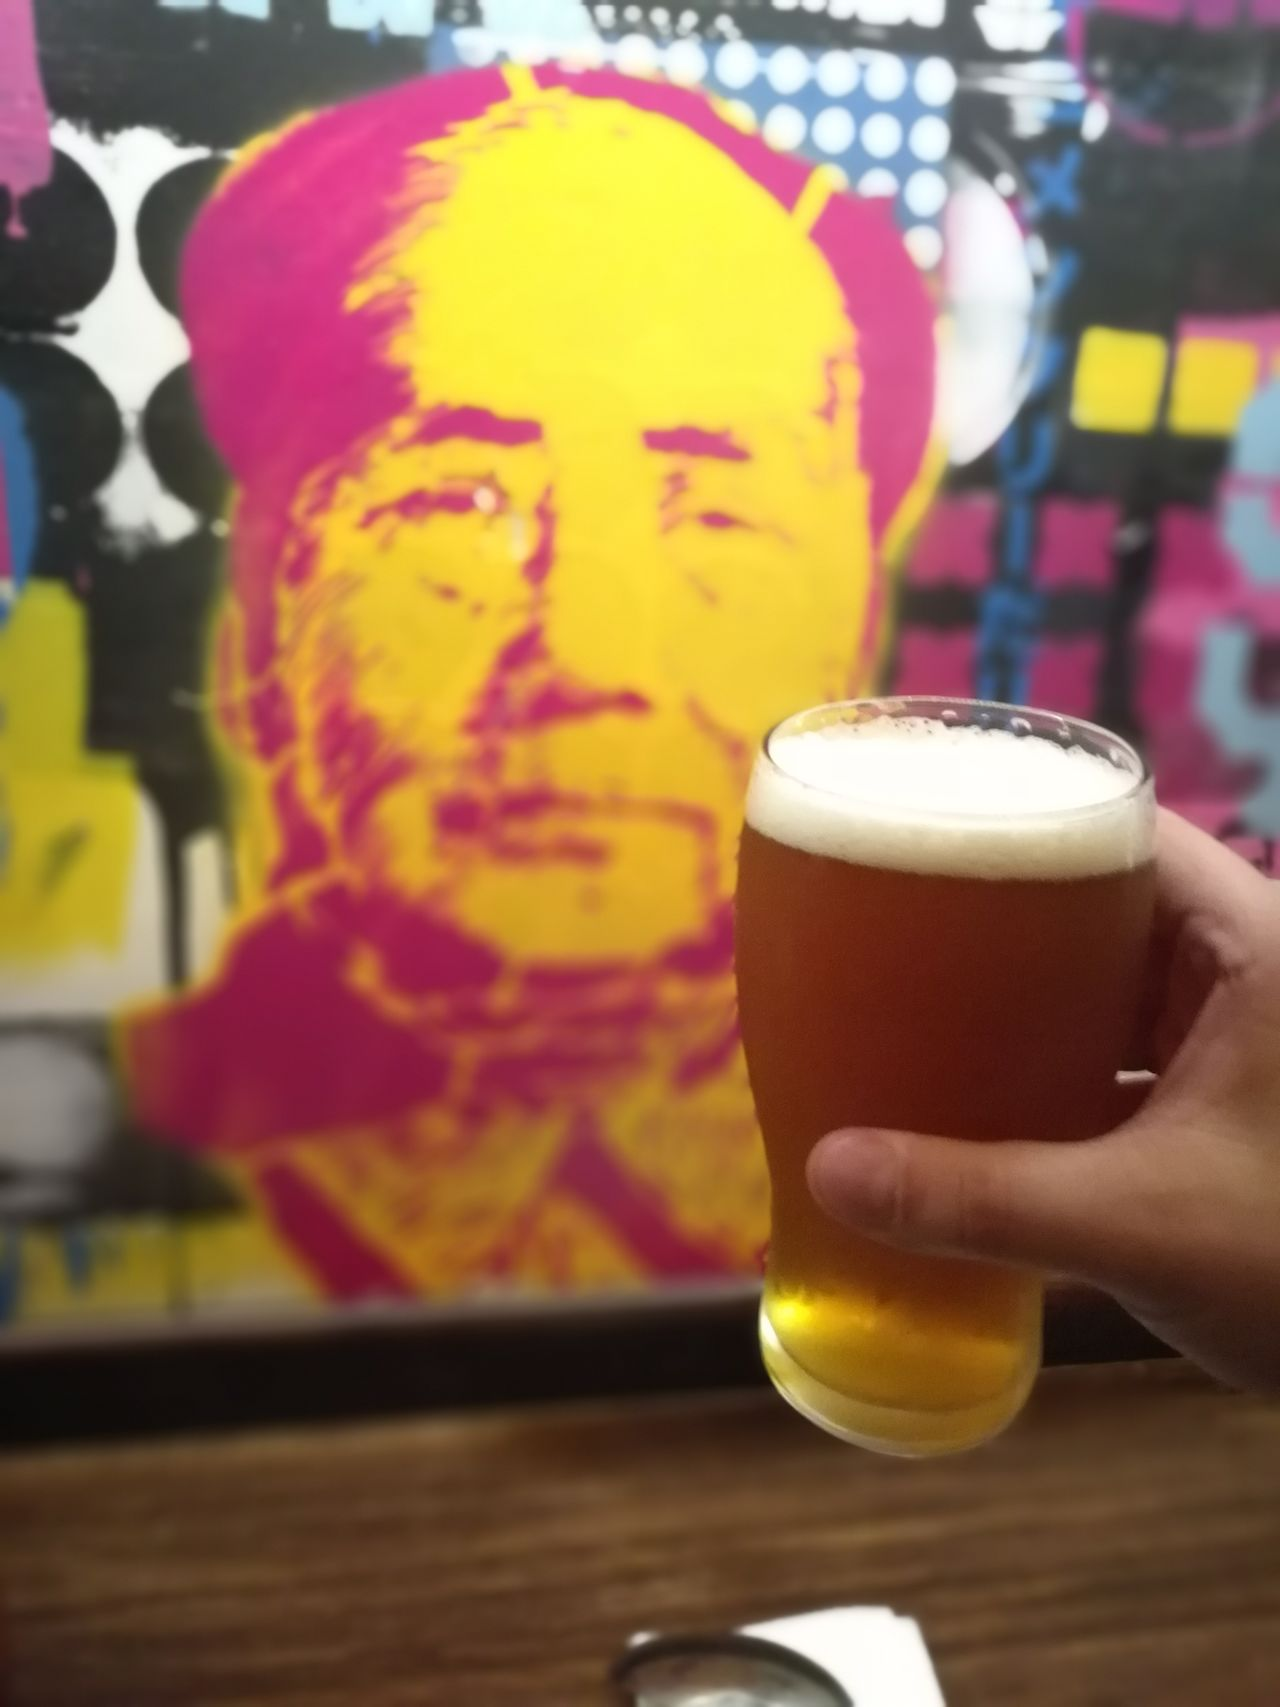 Beer - Alcohol Food And Drink Alcohol Human Hand Drink Beer Glass Mao Mao Tse-tung Mao Tse Tung Art ArtWork Happy Hour Bar Night City Finding New Frontiers